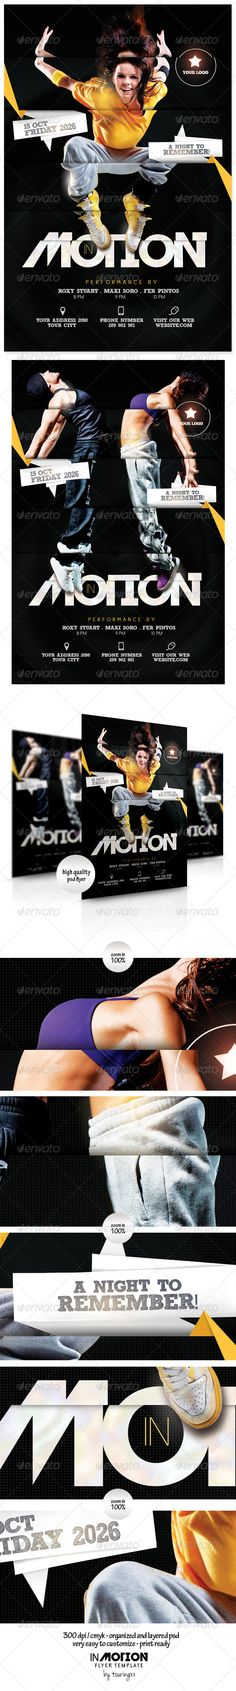 In Motion Flyer Template / $6. *** This flyer is perfect for the promotion of Events, Club Parties, Concerts, Musicals, Shows, Festivals, Theaters, Promotions or Whatever You Want!.***